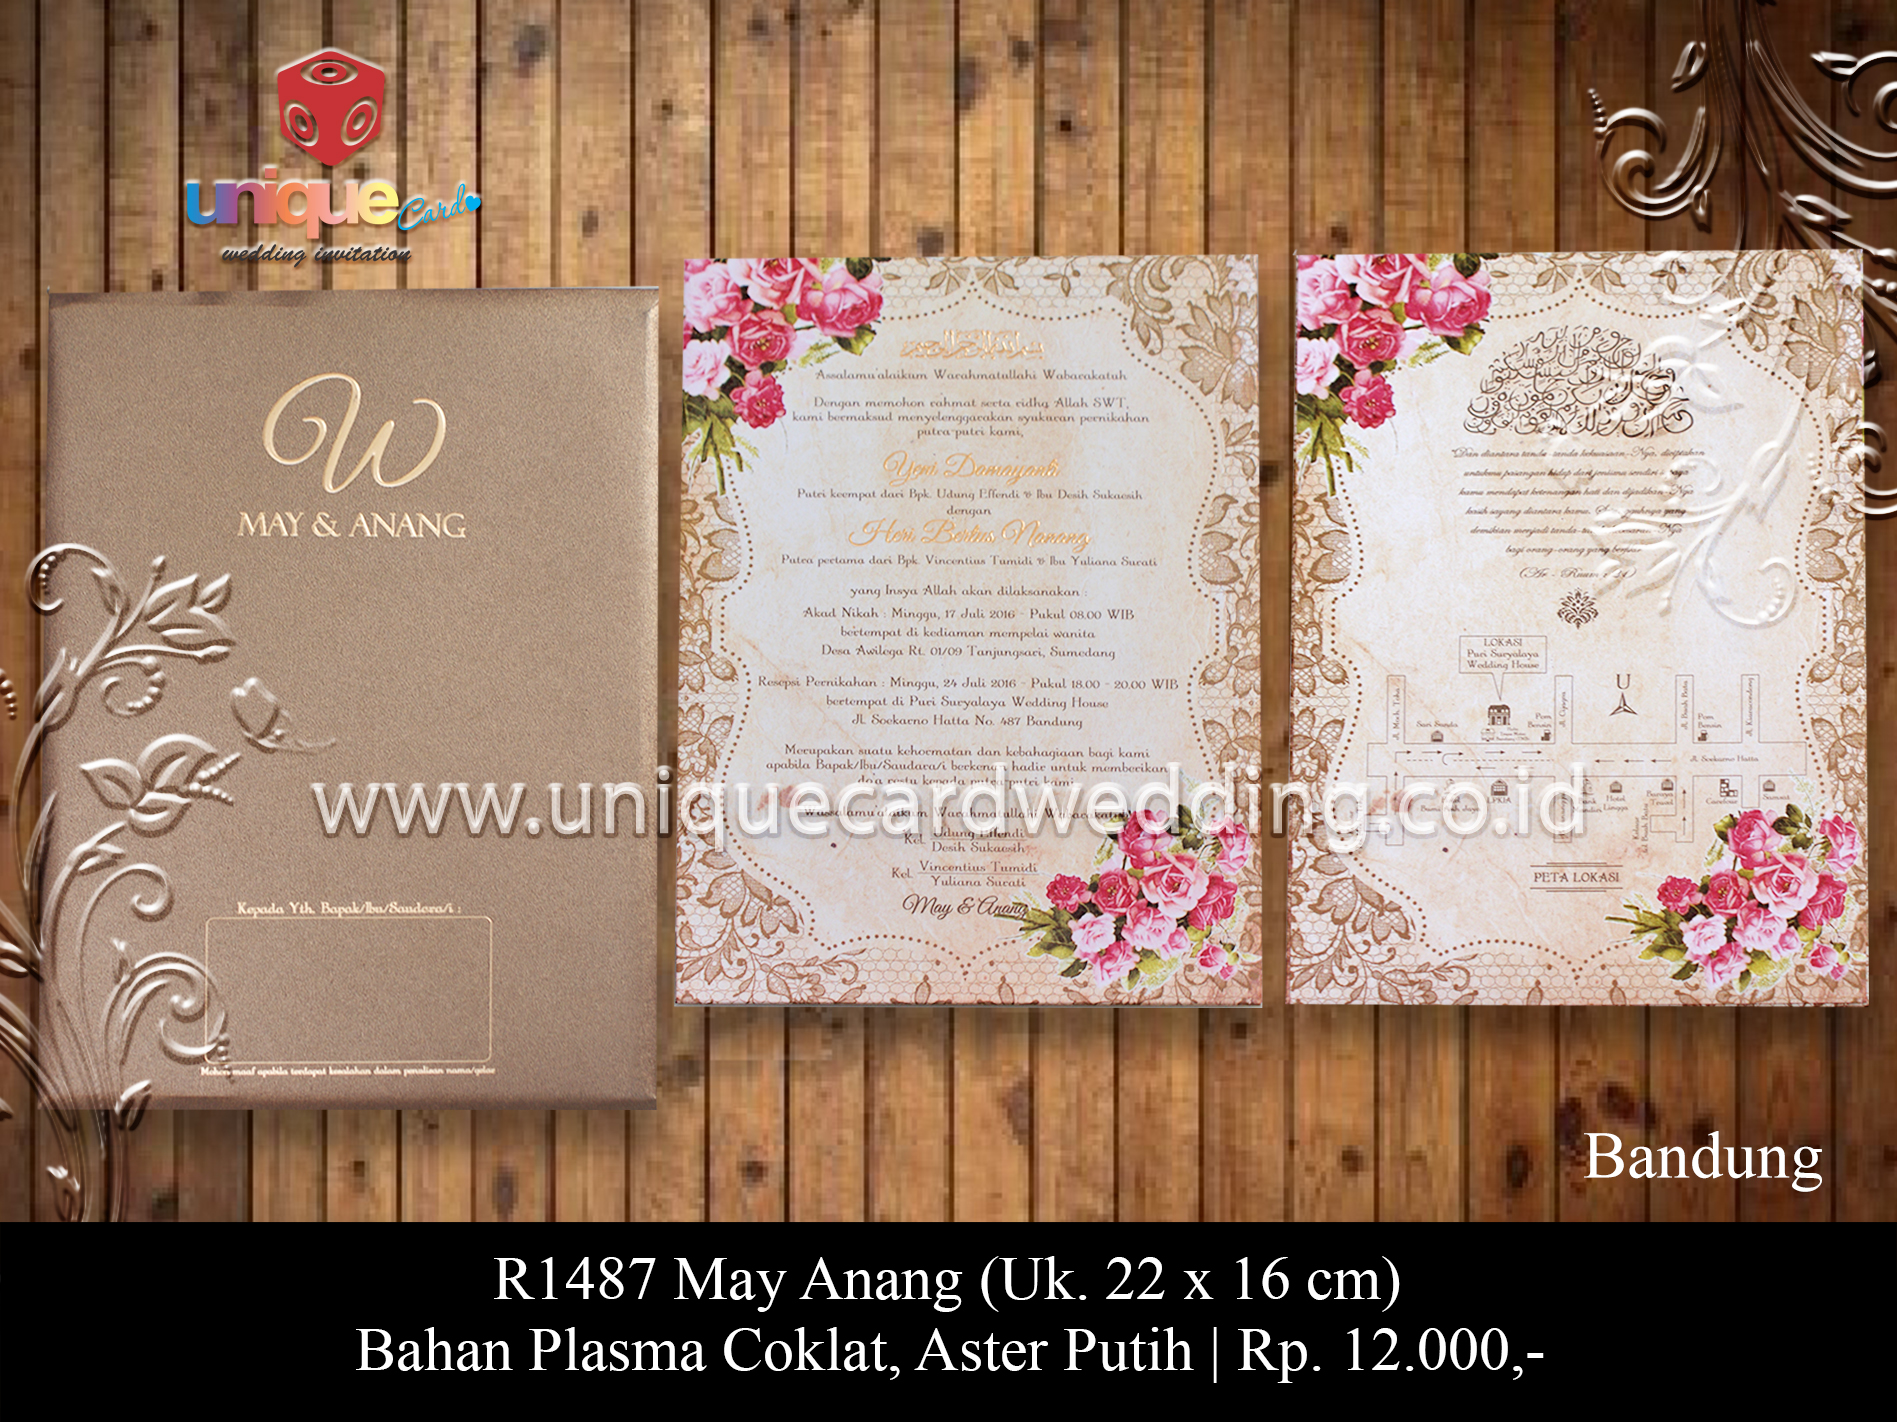 http://www.uniquecardwedding.co.id/wp-content/uploads/2016/10/May-Anang.jpg